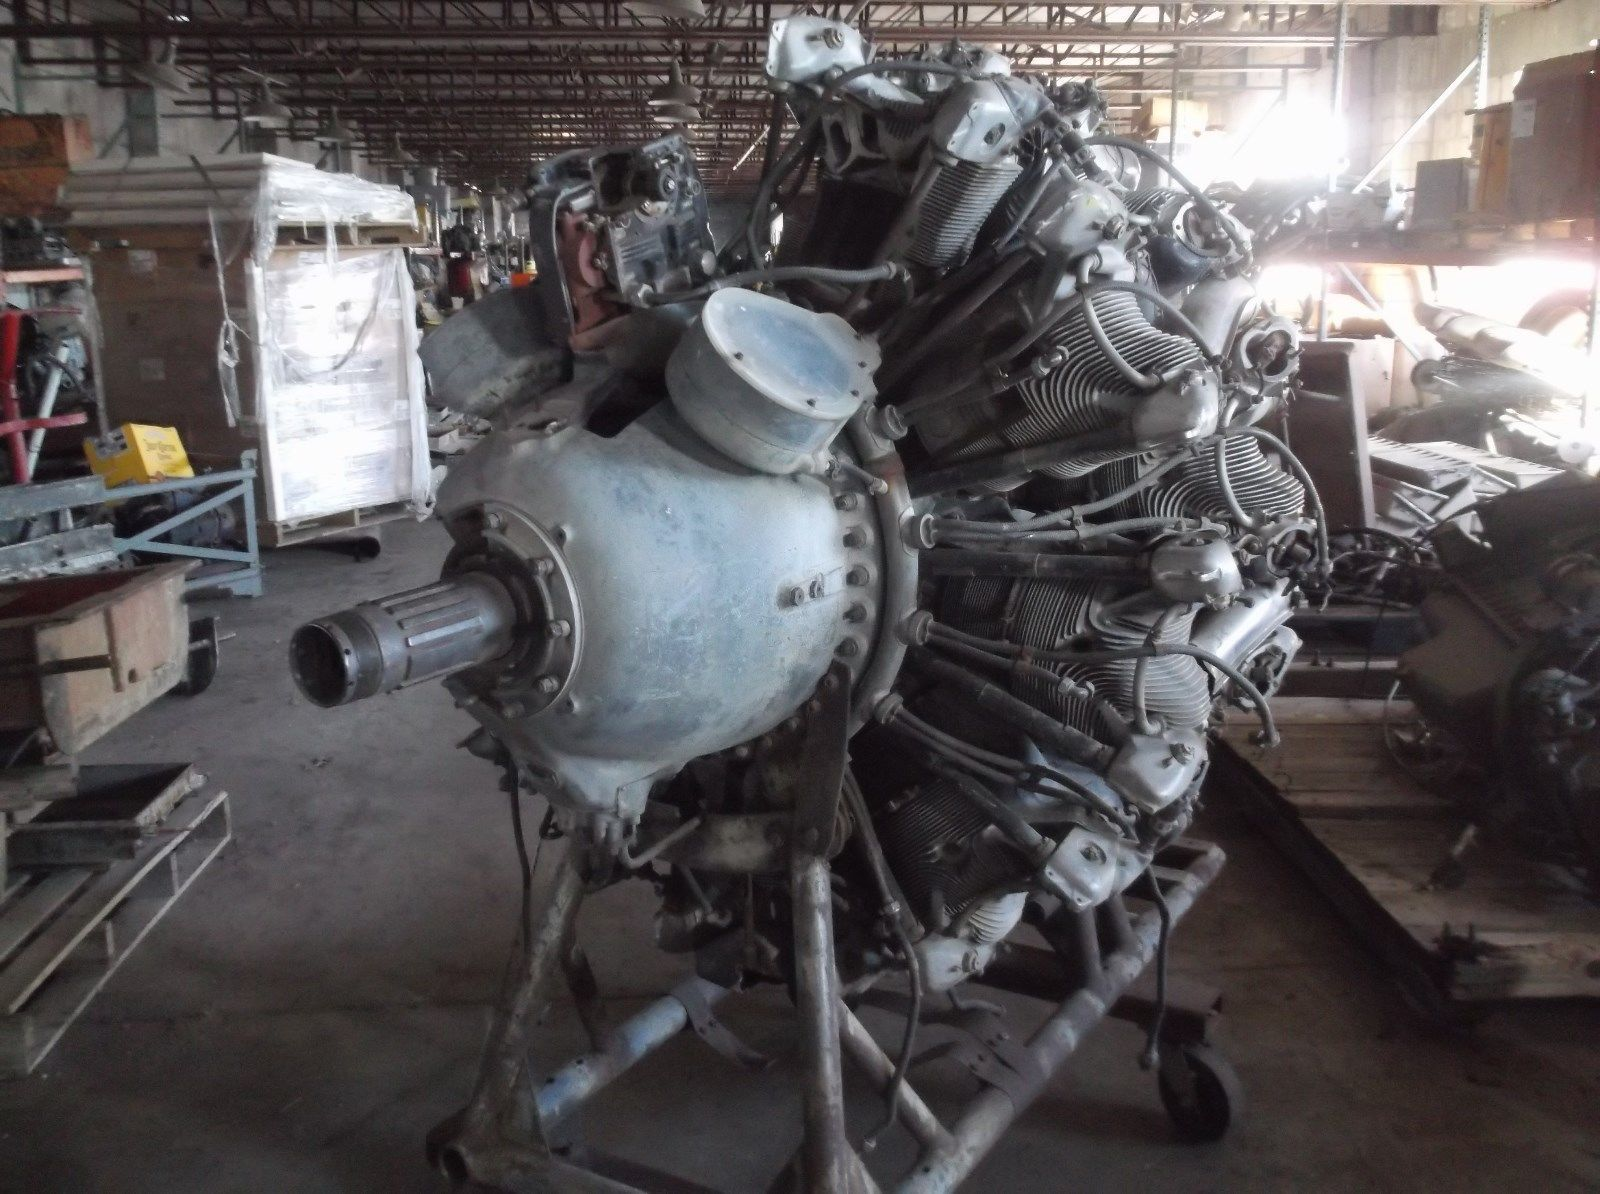 US $12,000 00 Used in eBay Motors, Parts & Accessories